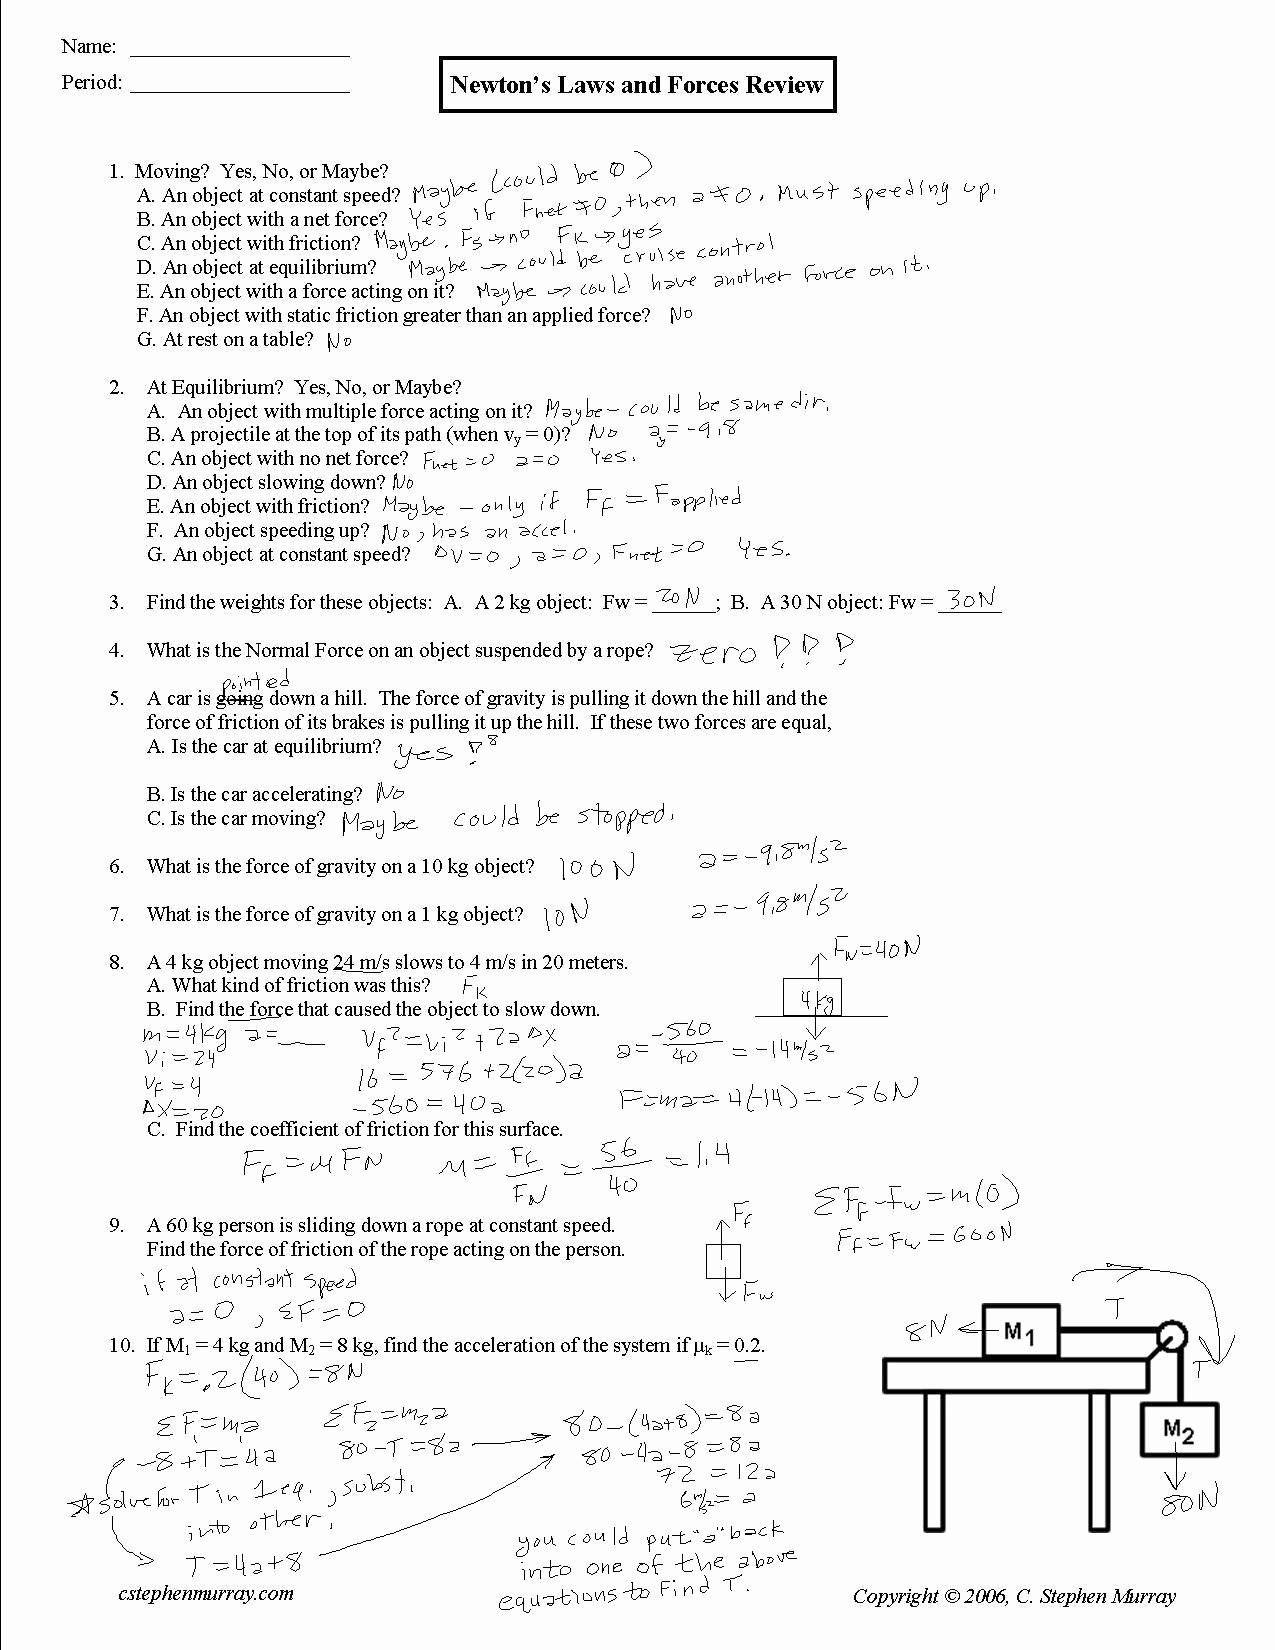 Newton's Laws Review Worksheet Answers Beautiful Newtons Second Law and Weight Worksheet Answer Key